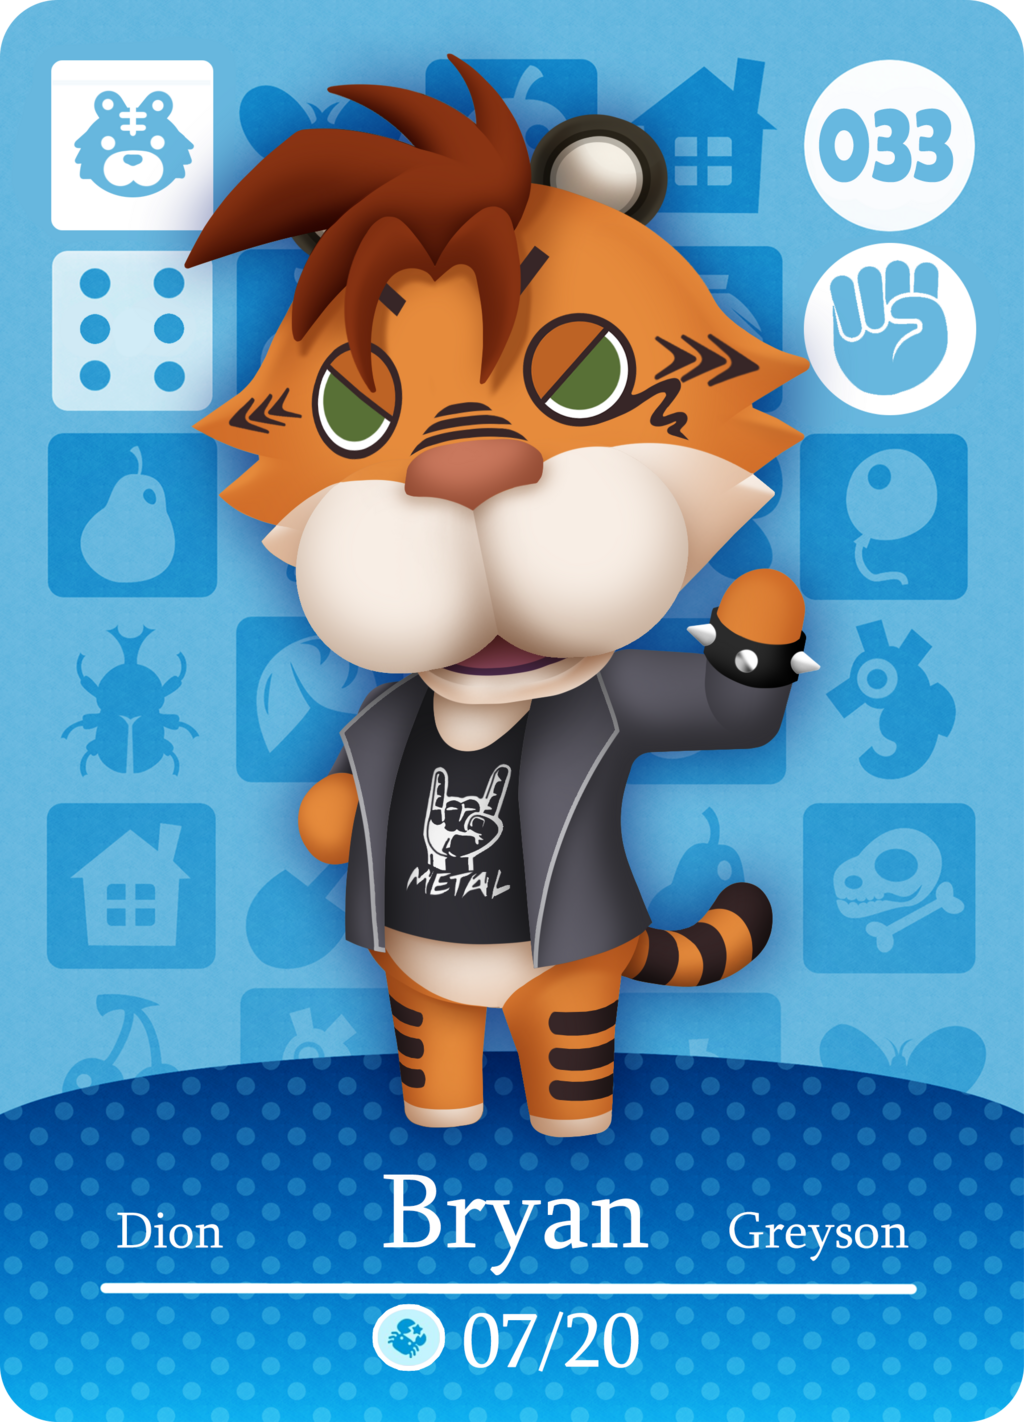 Most recent image: Bryan Animal Crossing Card by Panda